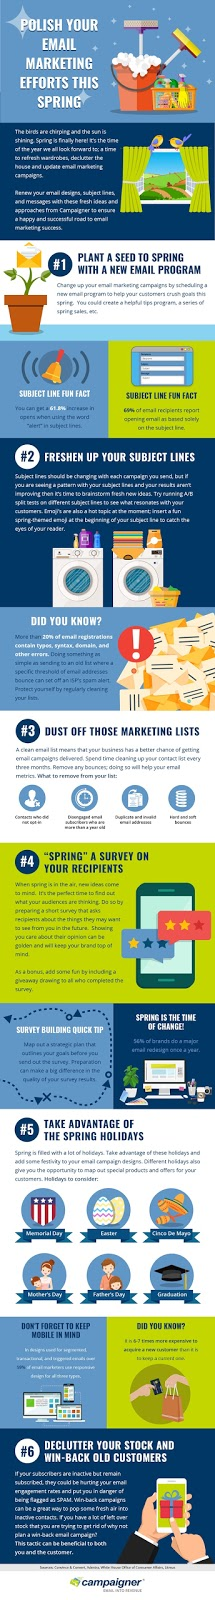 Polish Your Email Marketing Effects This Spring